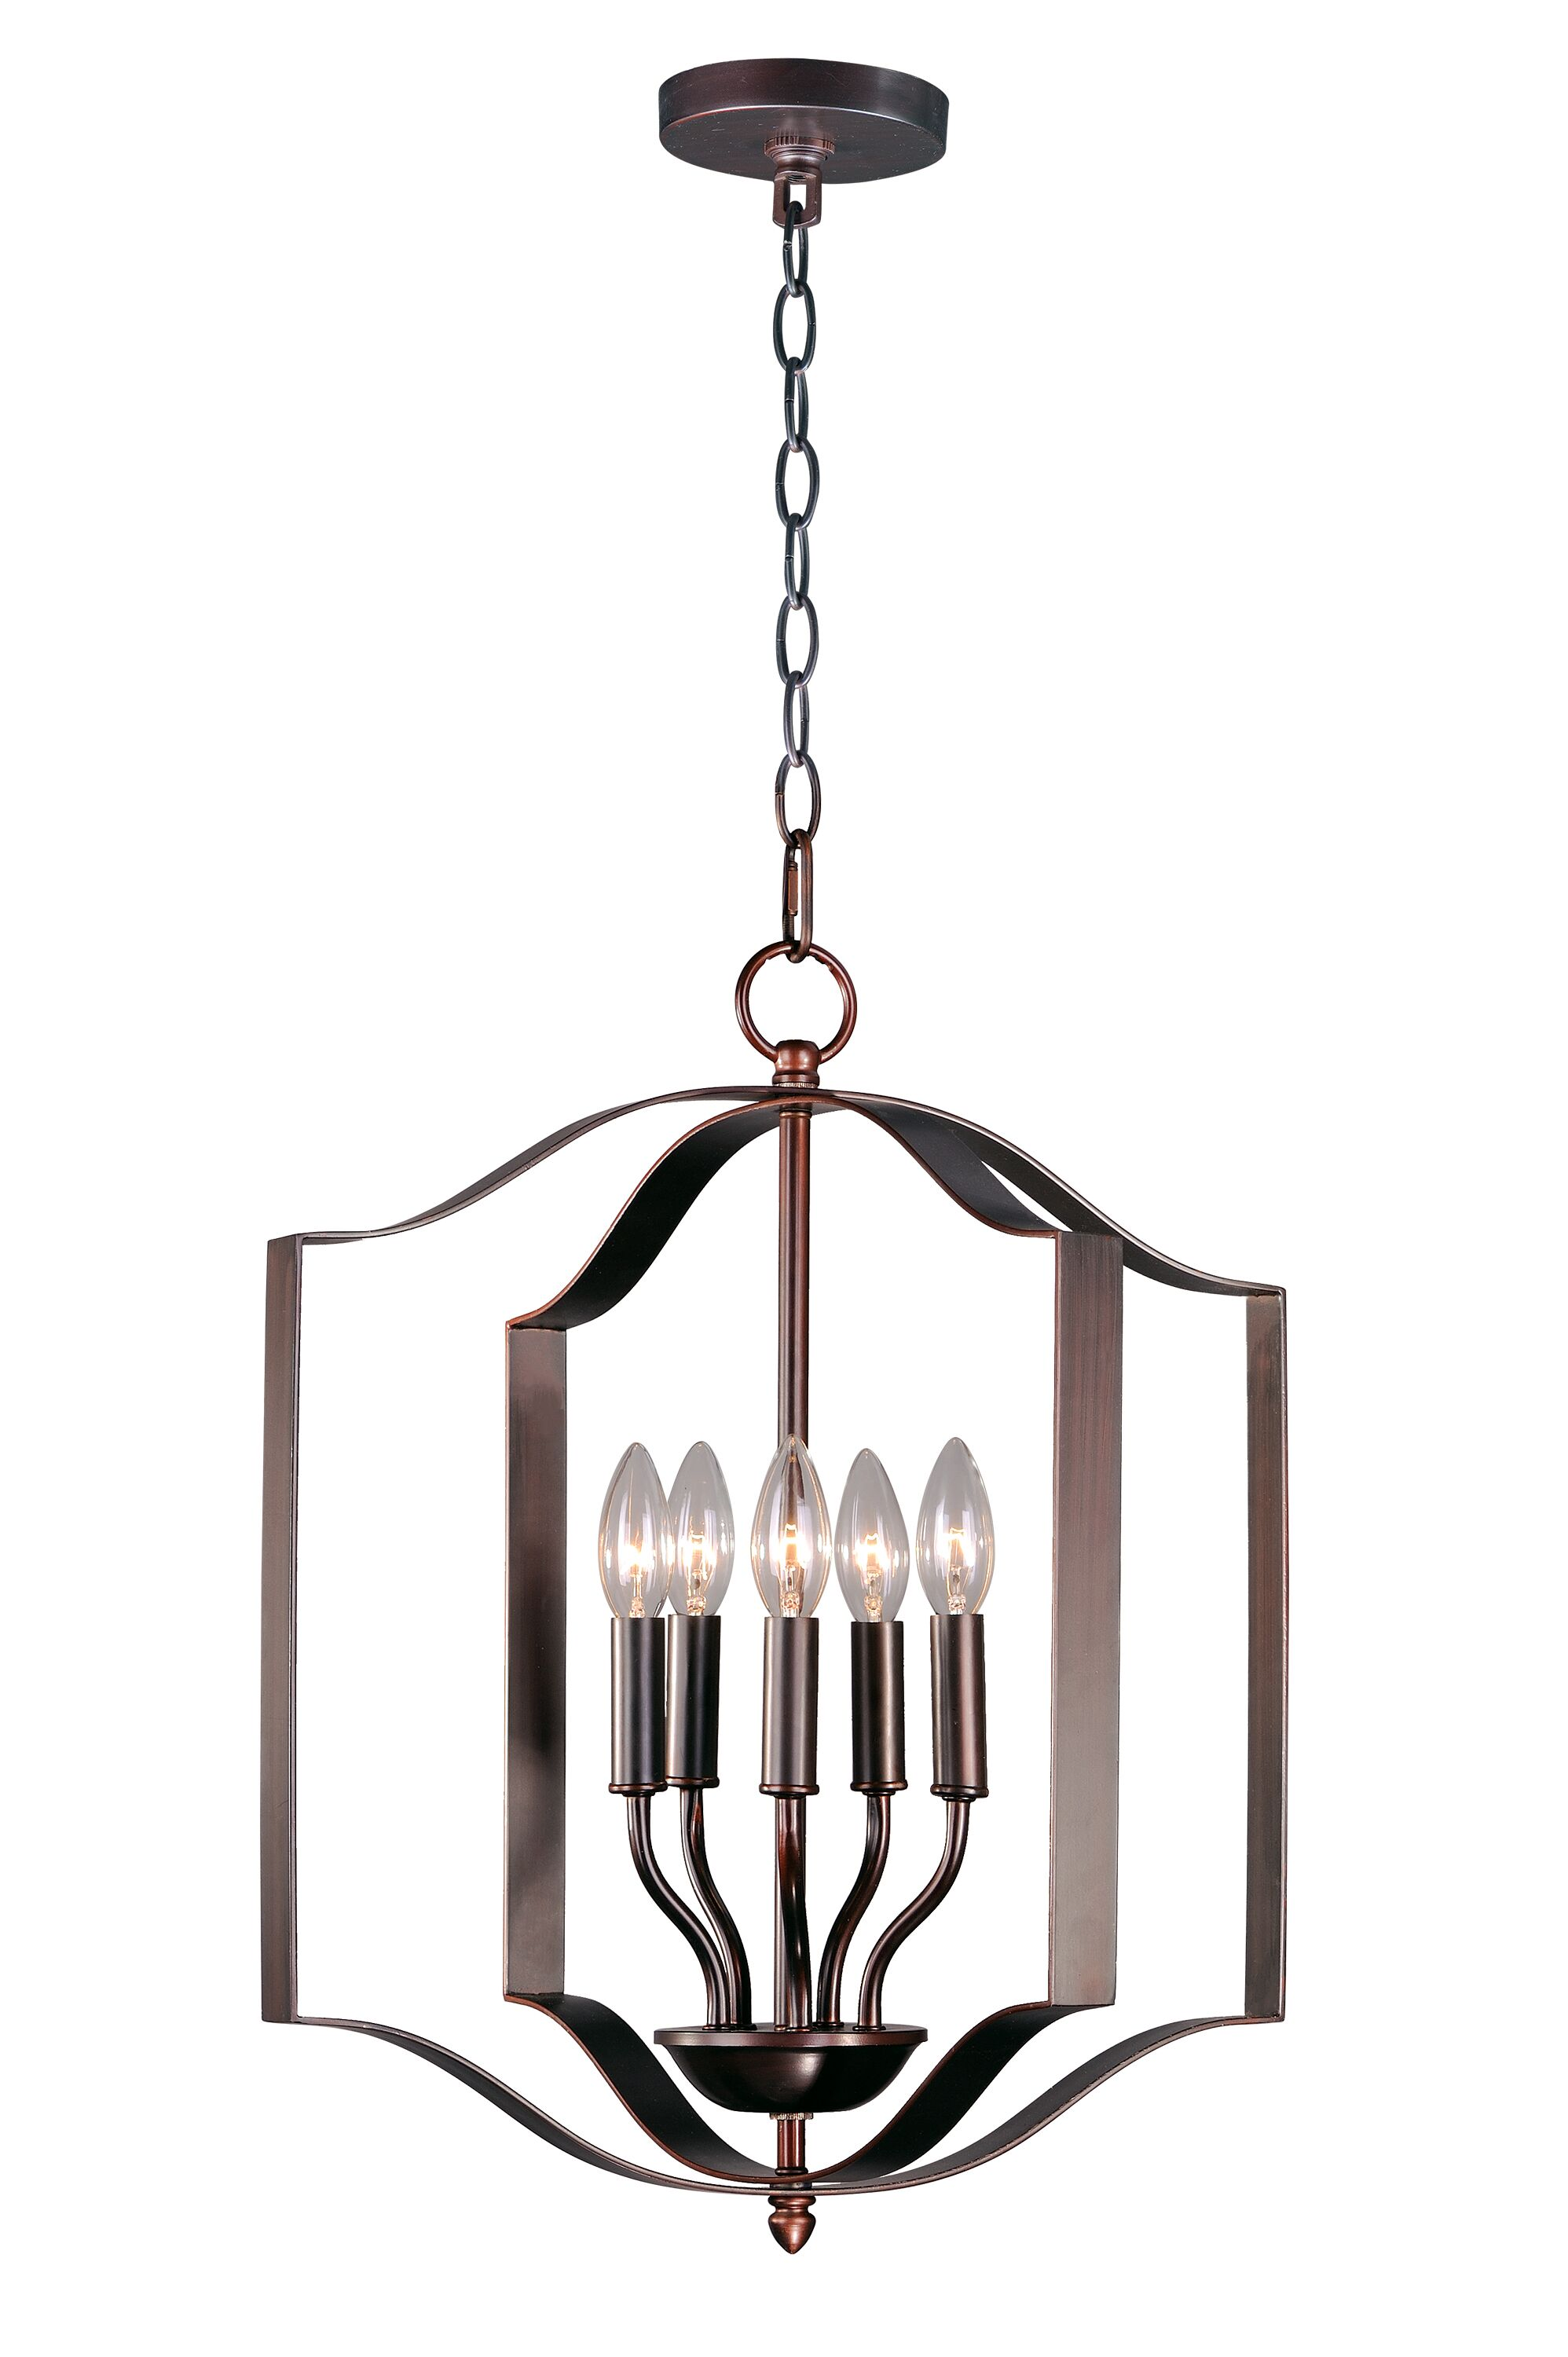 Mielke 5-Light Lantern Pendent Finish: Oil Rubbed Bronze